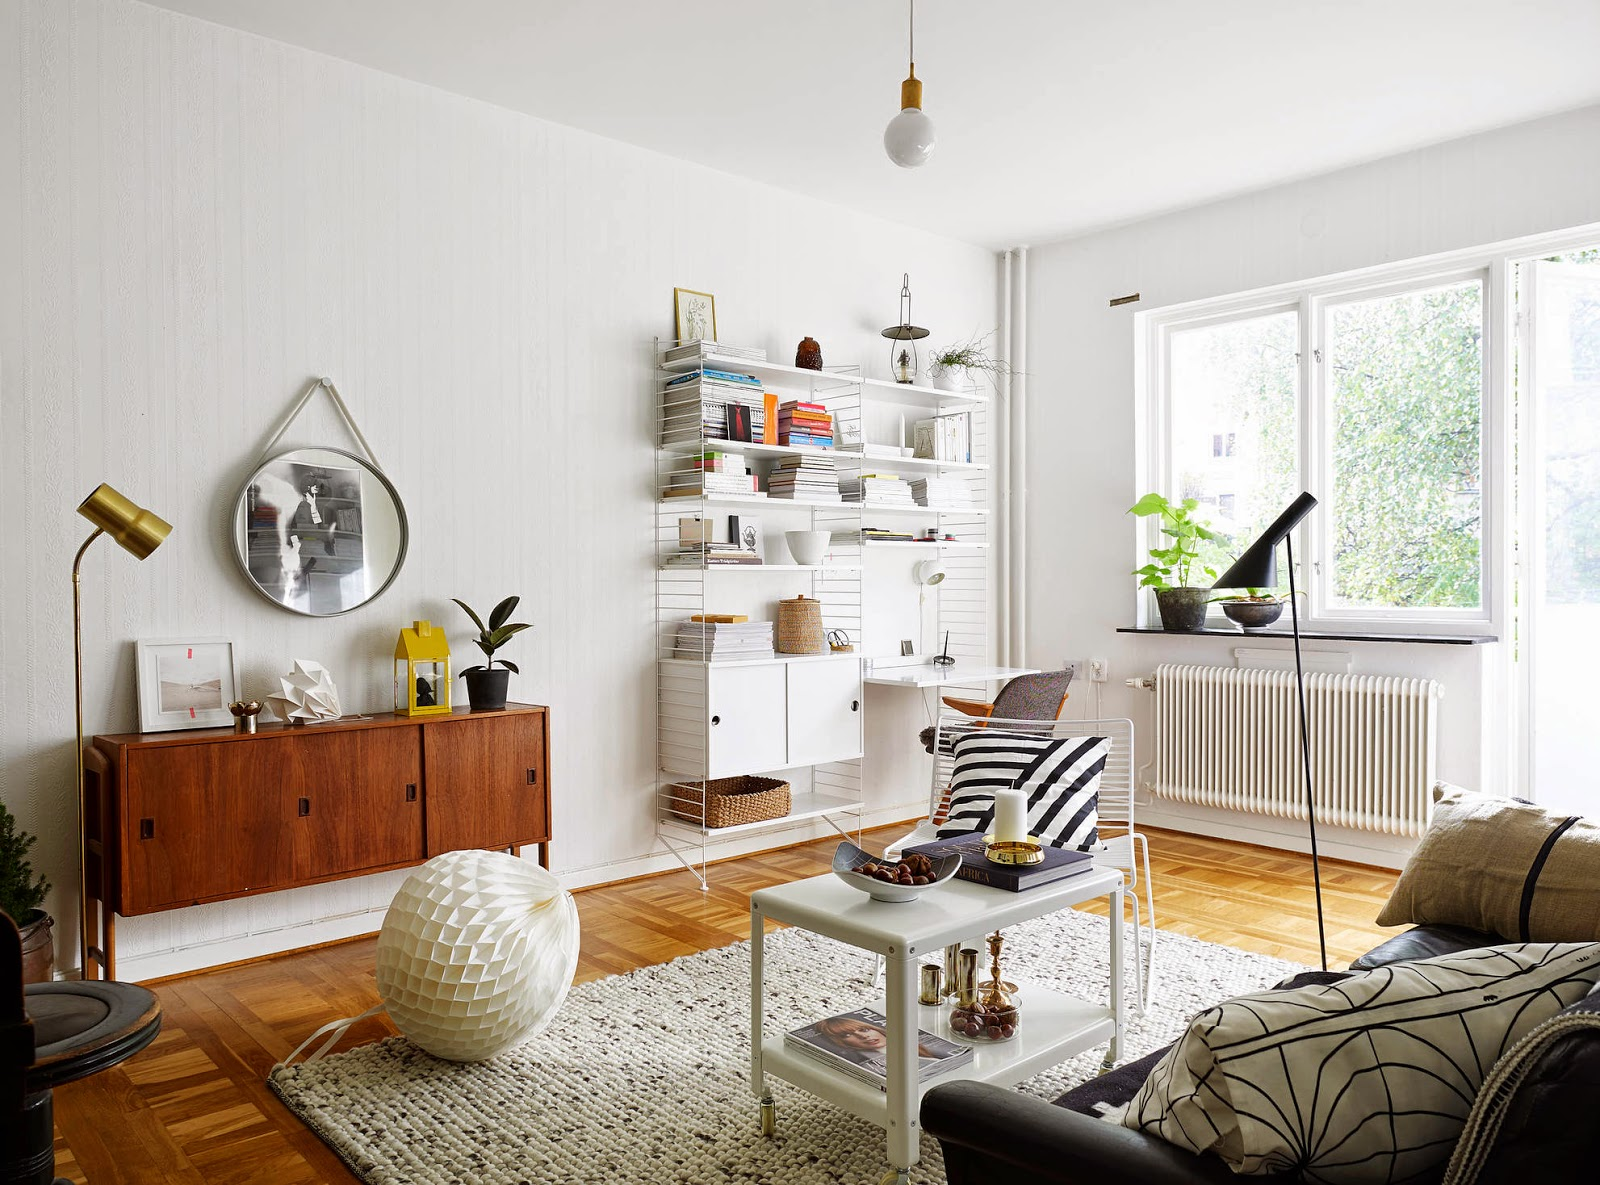 My scandinavian home a swedish apartment with a mid century touch - Scandinavian interior ...